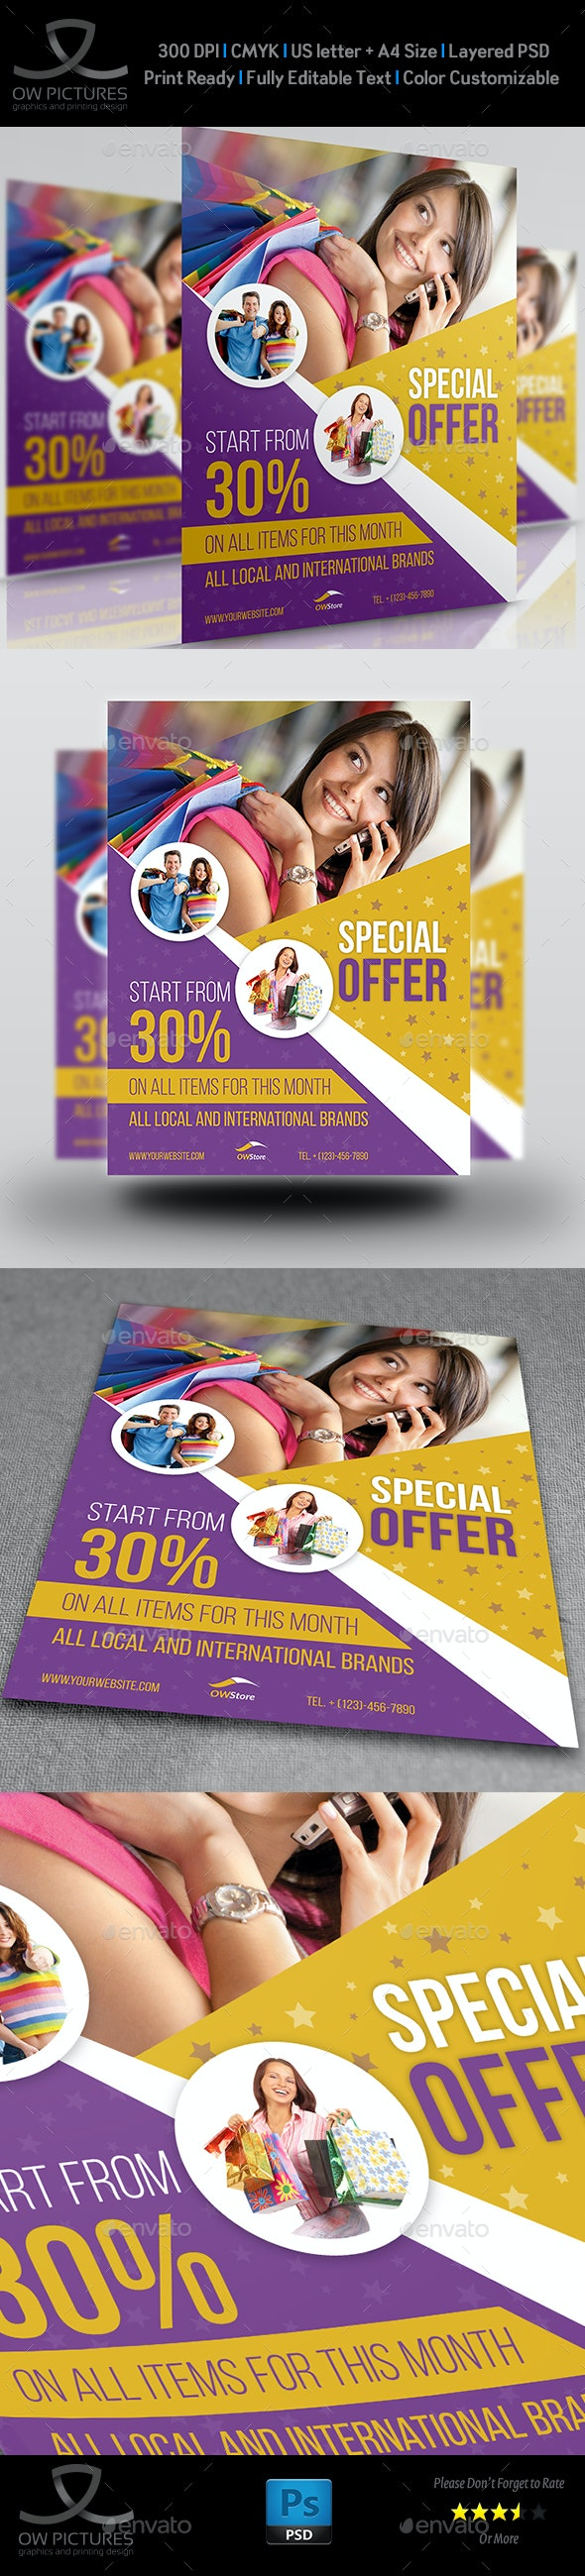 Special Offer Products Flyer Template - Commerce Flyers